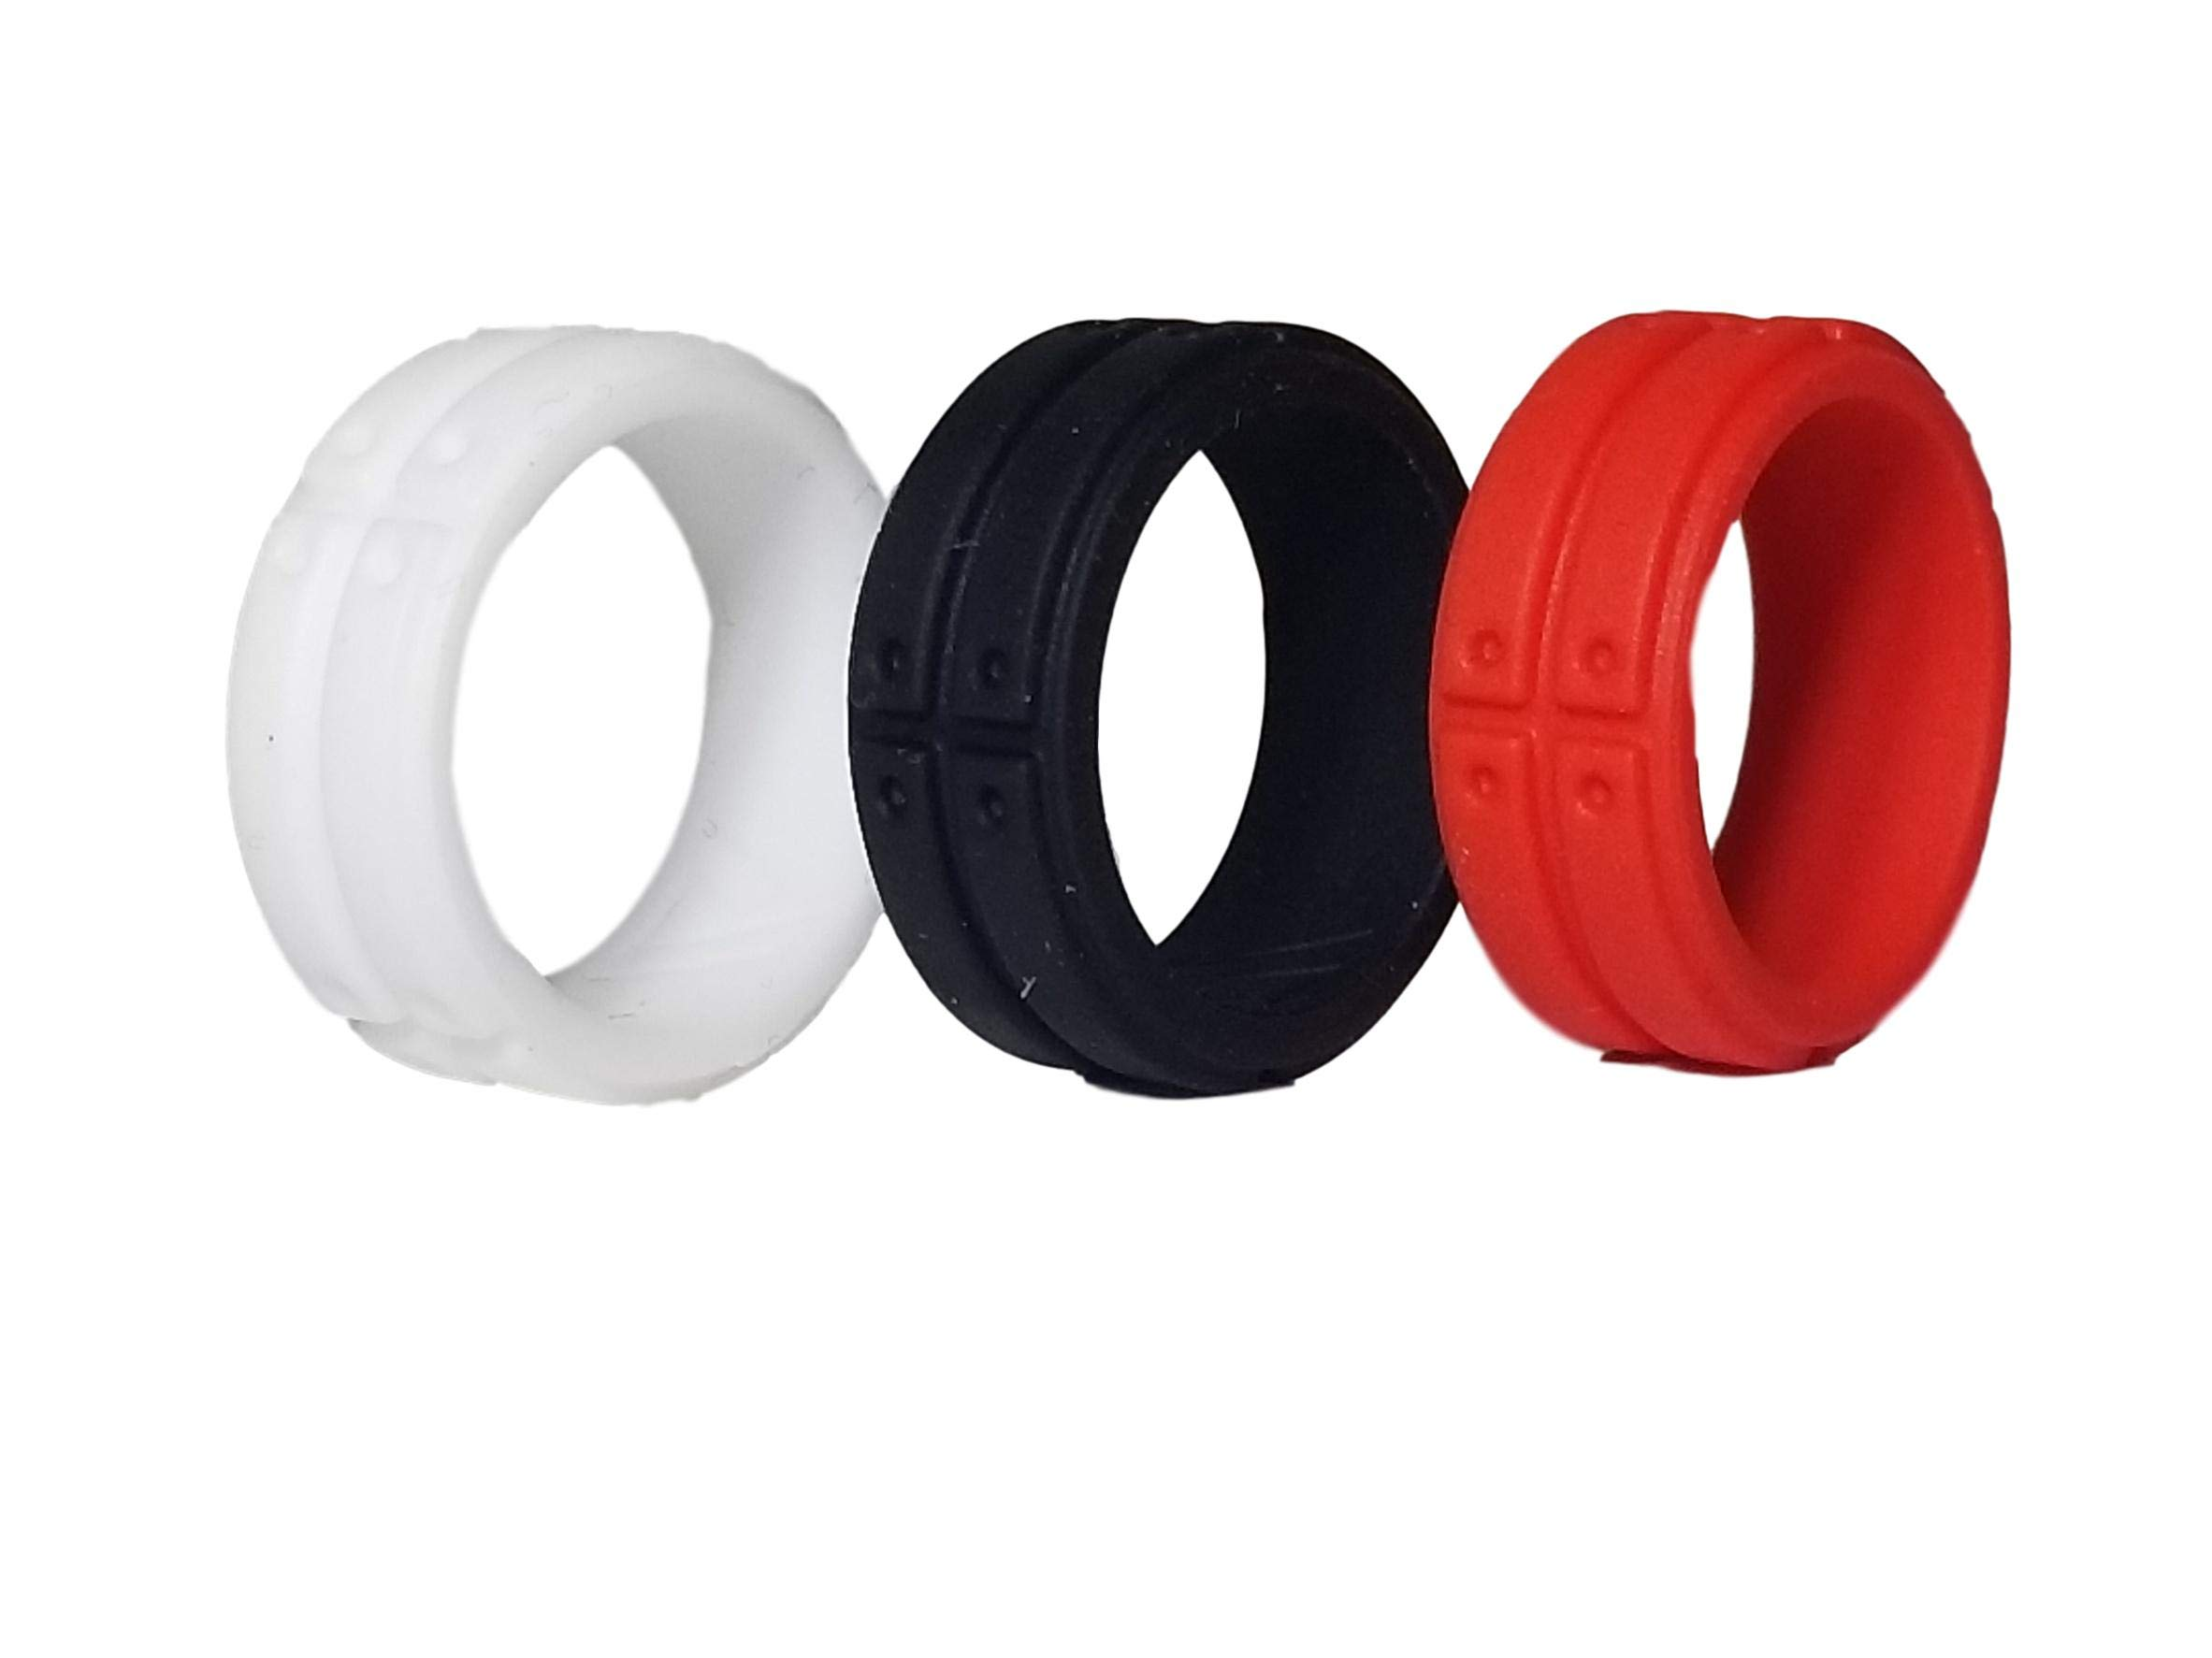 Pink Willow Silicone Ring by NEW Men's Custom ultralite gym Fitness ring, Functional wedding ring, perfect for sports, outdoors and everyday lifestyle's, KARBON (multi 3 pack, 10)